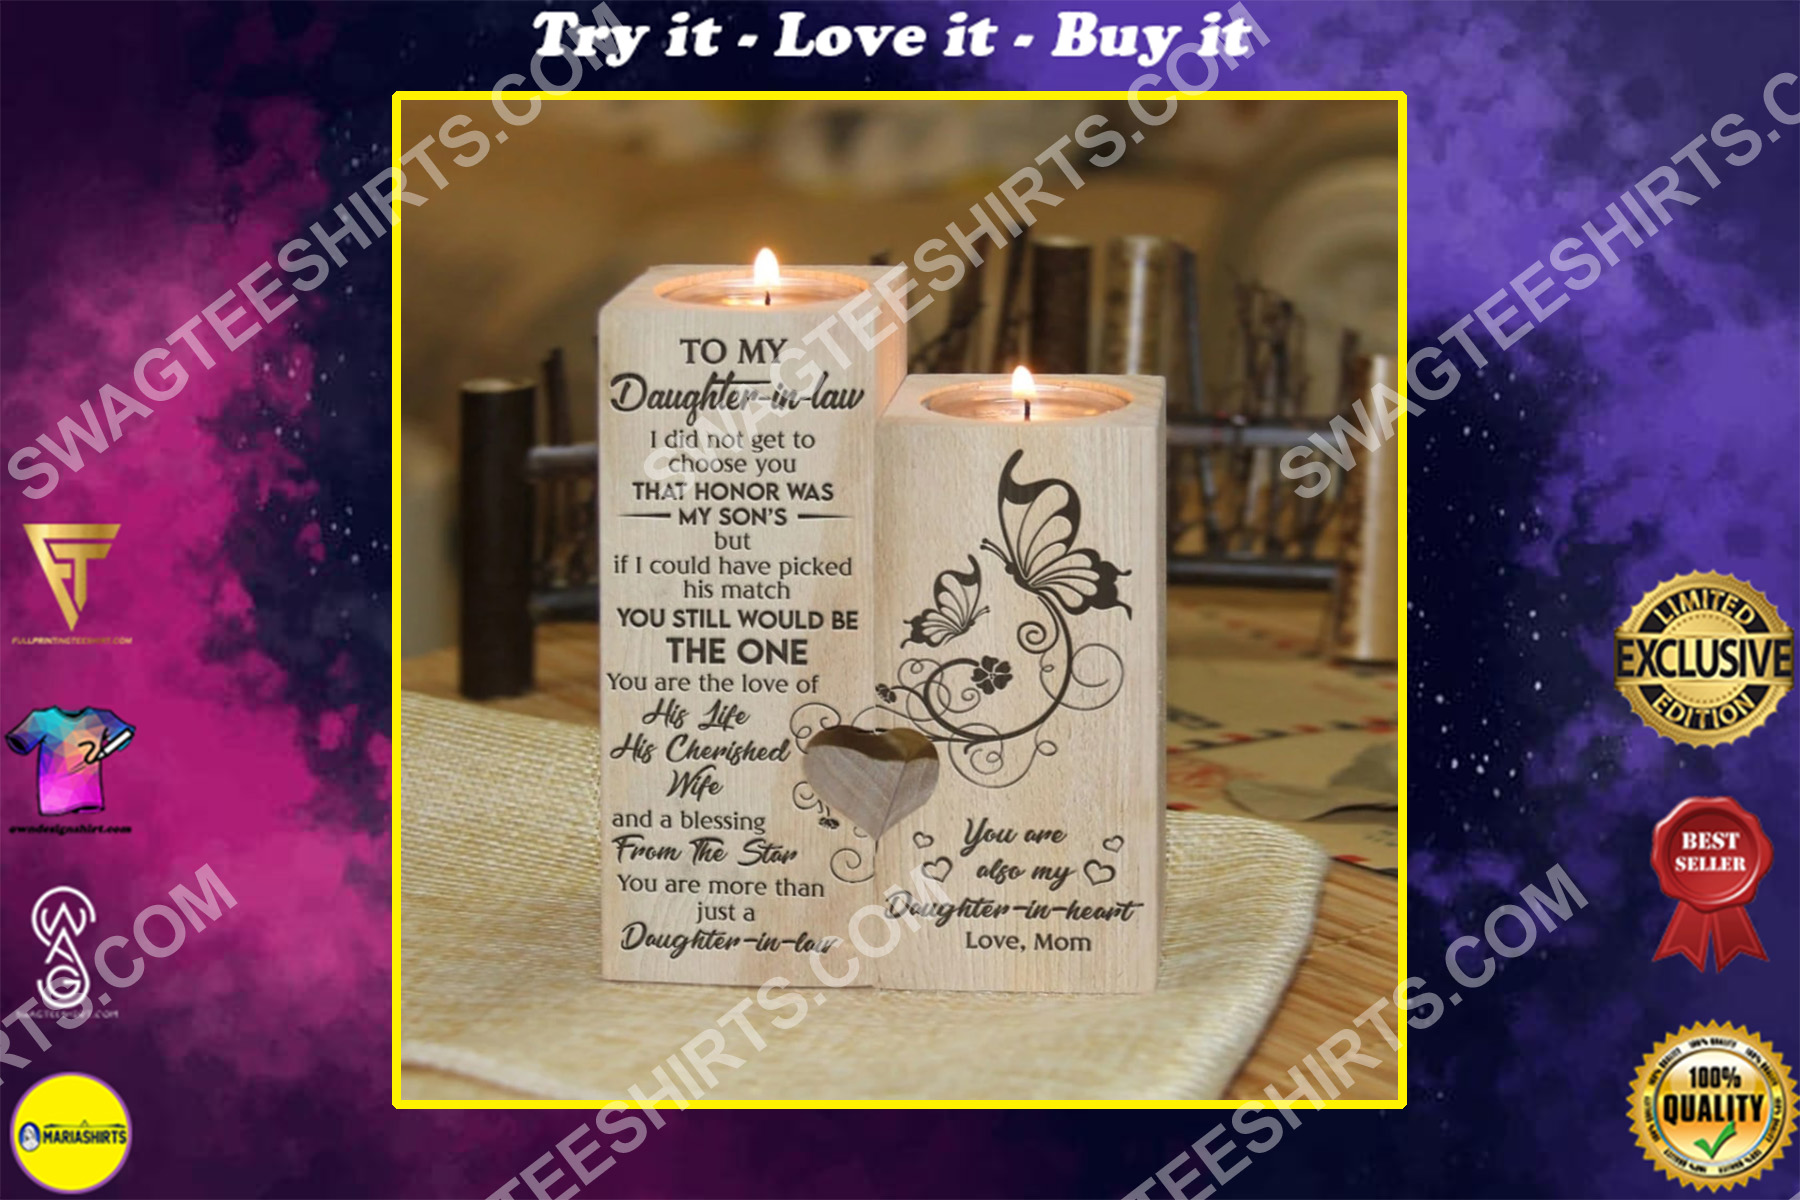 to my daughter-in-law you still would be the one your mom candle holder